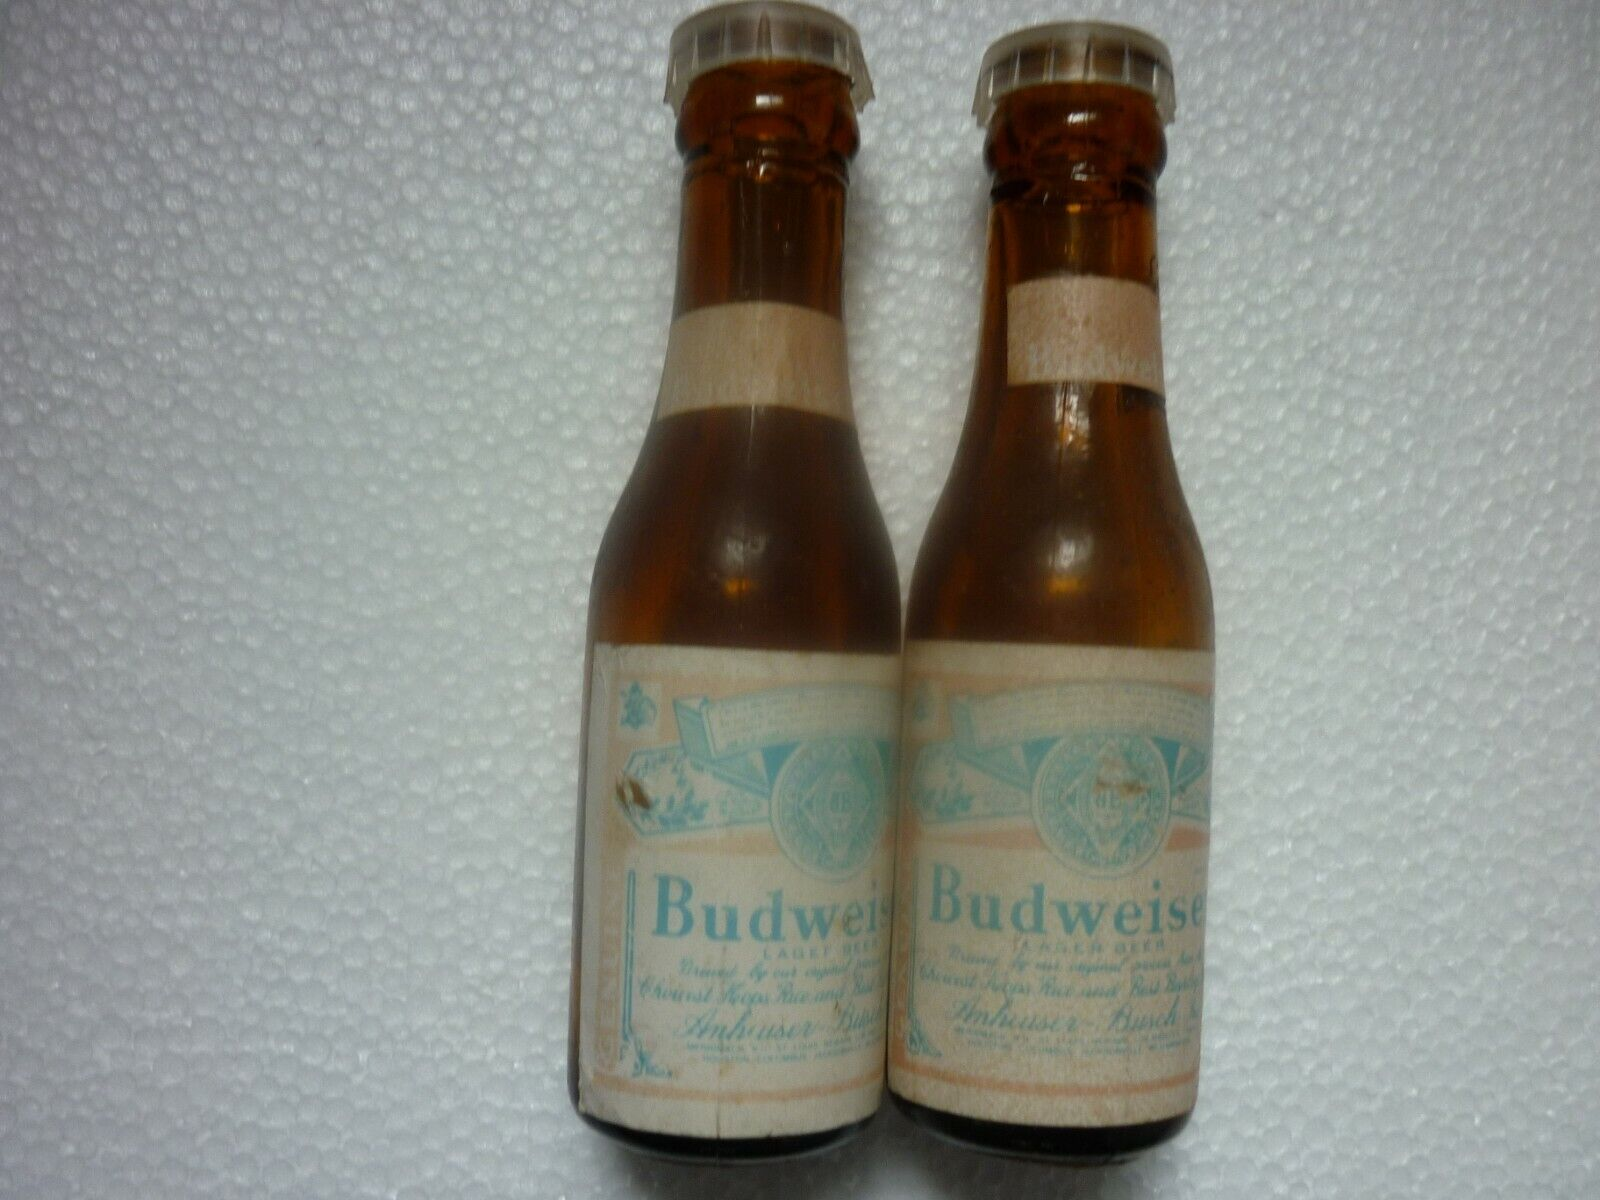 Vintage Glass Budweiser Salt And Pepper Shakers Plastic Tops Circa 1950sFade